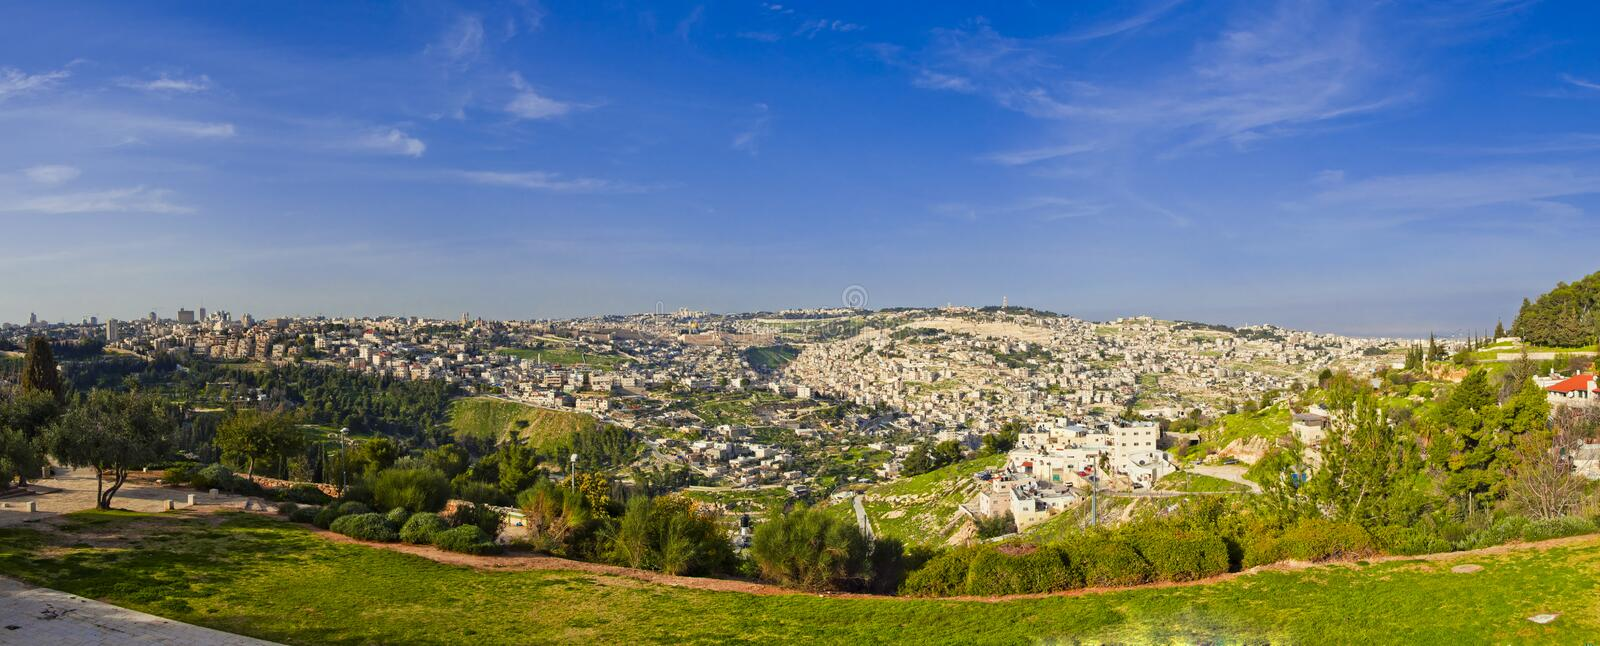 The Temple Mount, in Jerusalem, Israel royalty free stock image